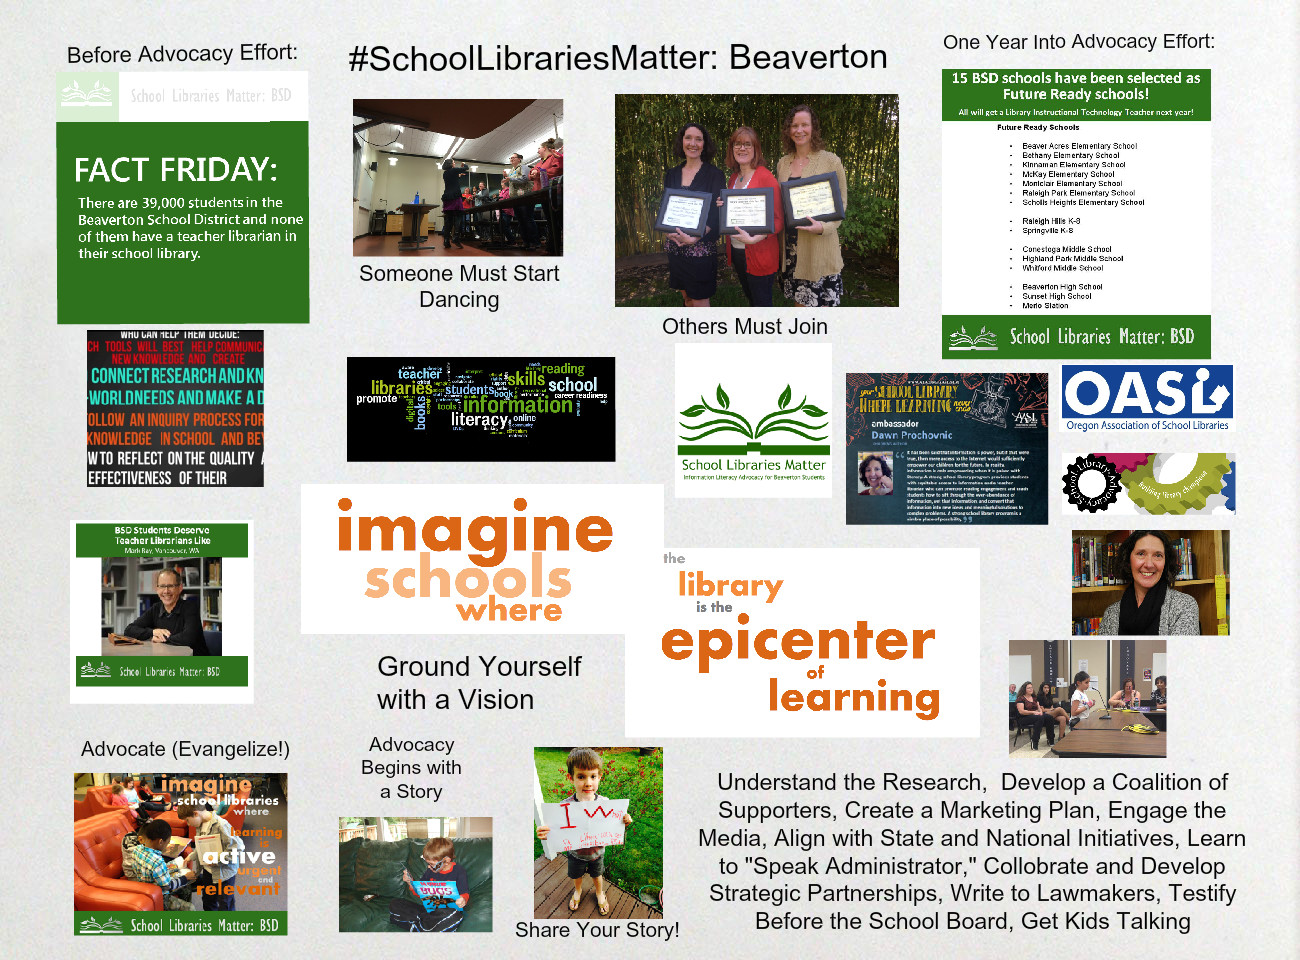 [2015] Dawn Prochovnic: School Libraries Matter: Beaverton